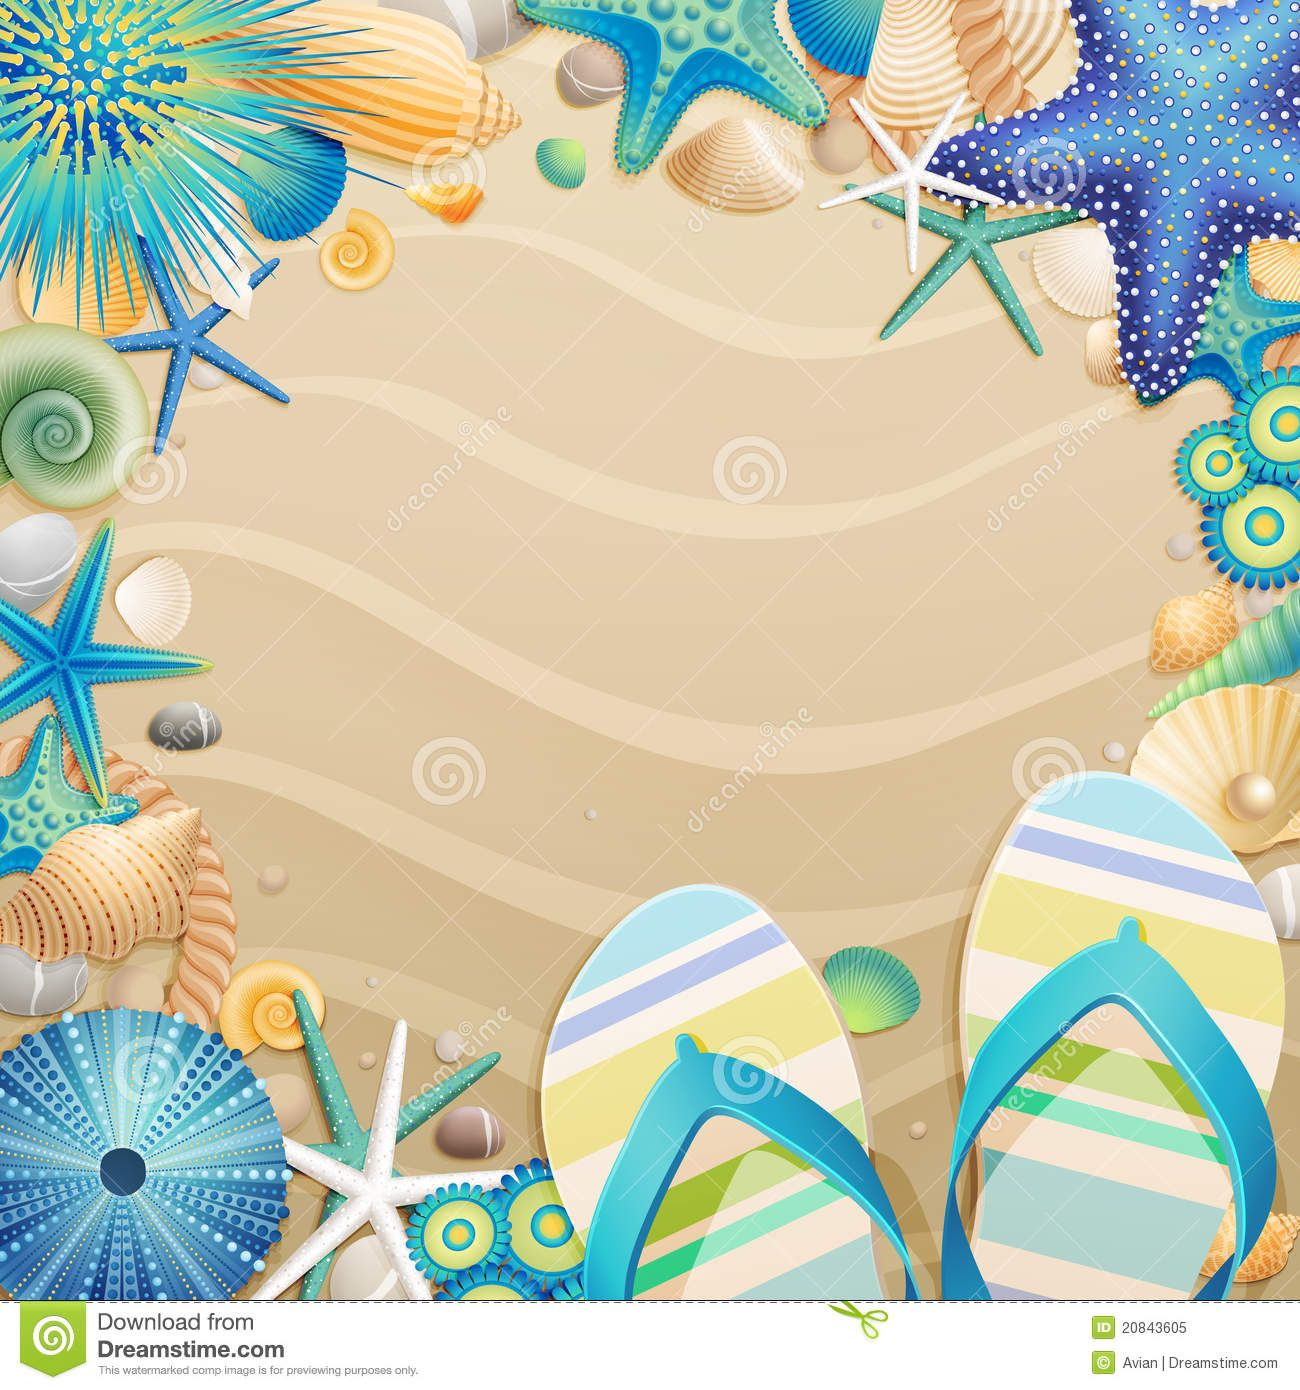 c13629ed5a26 free clipart images of flip flops on the beach - Google Search ...